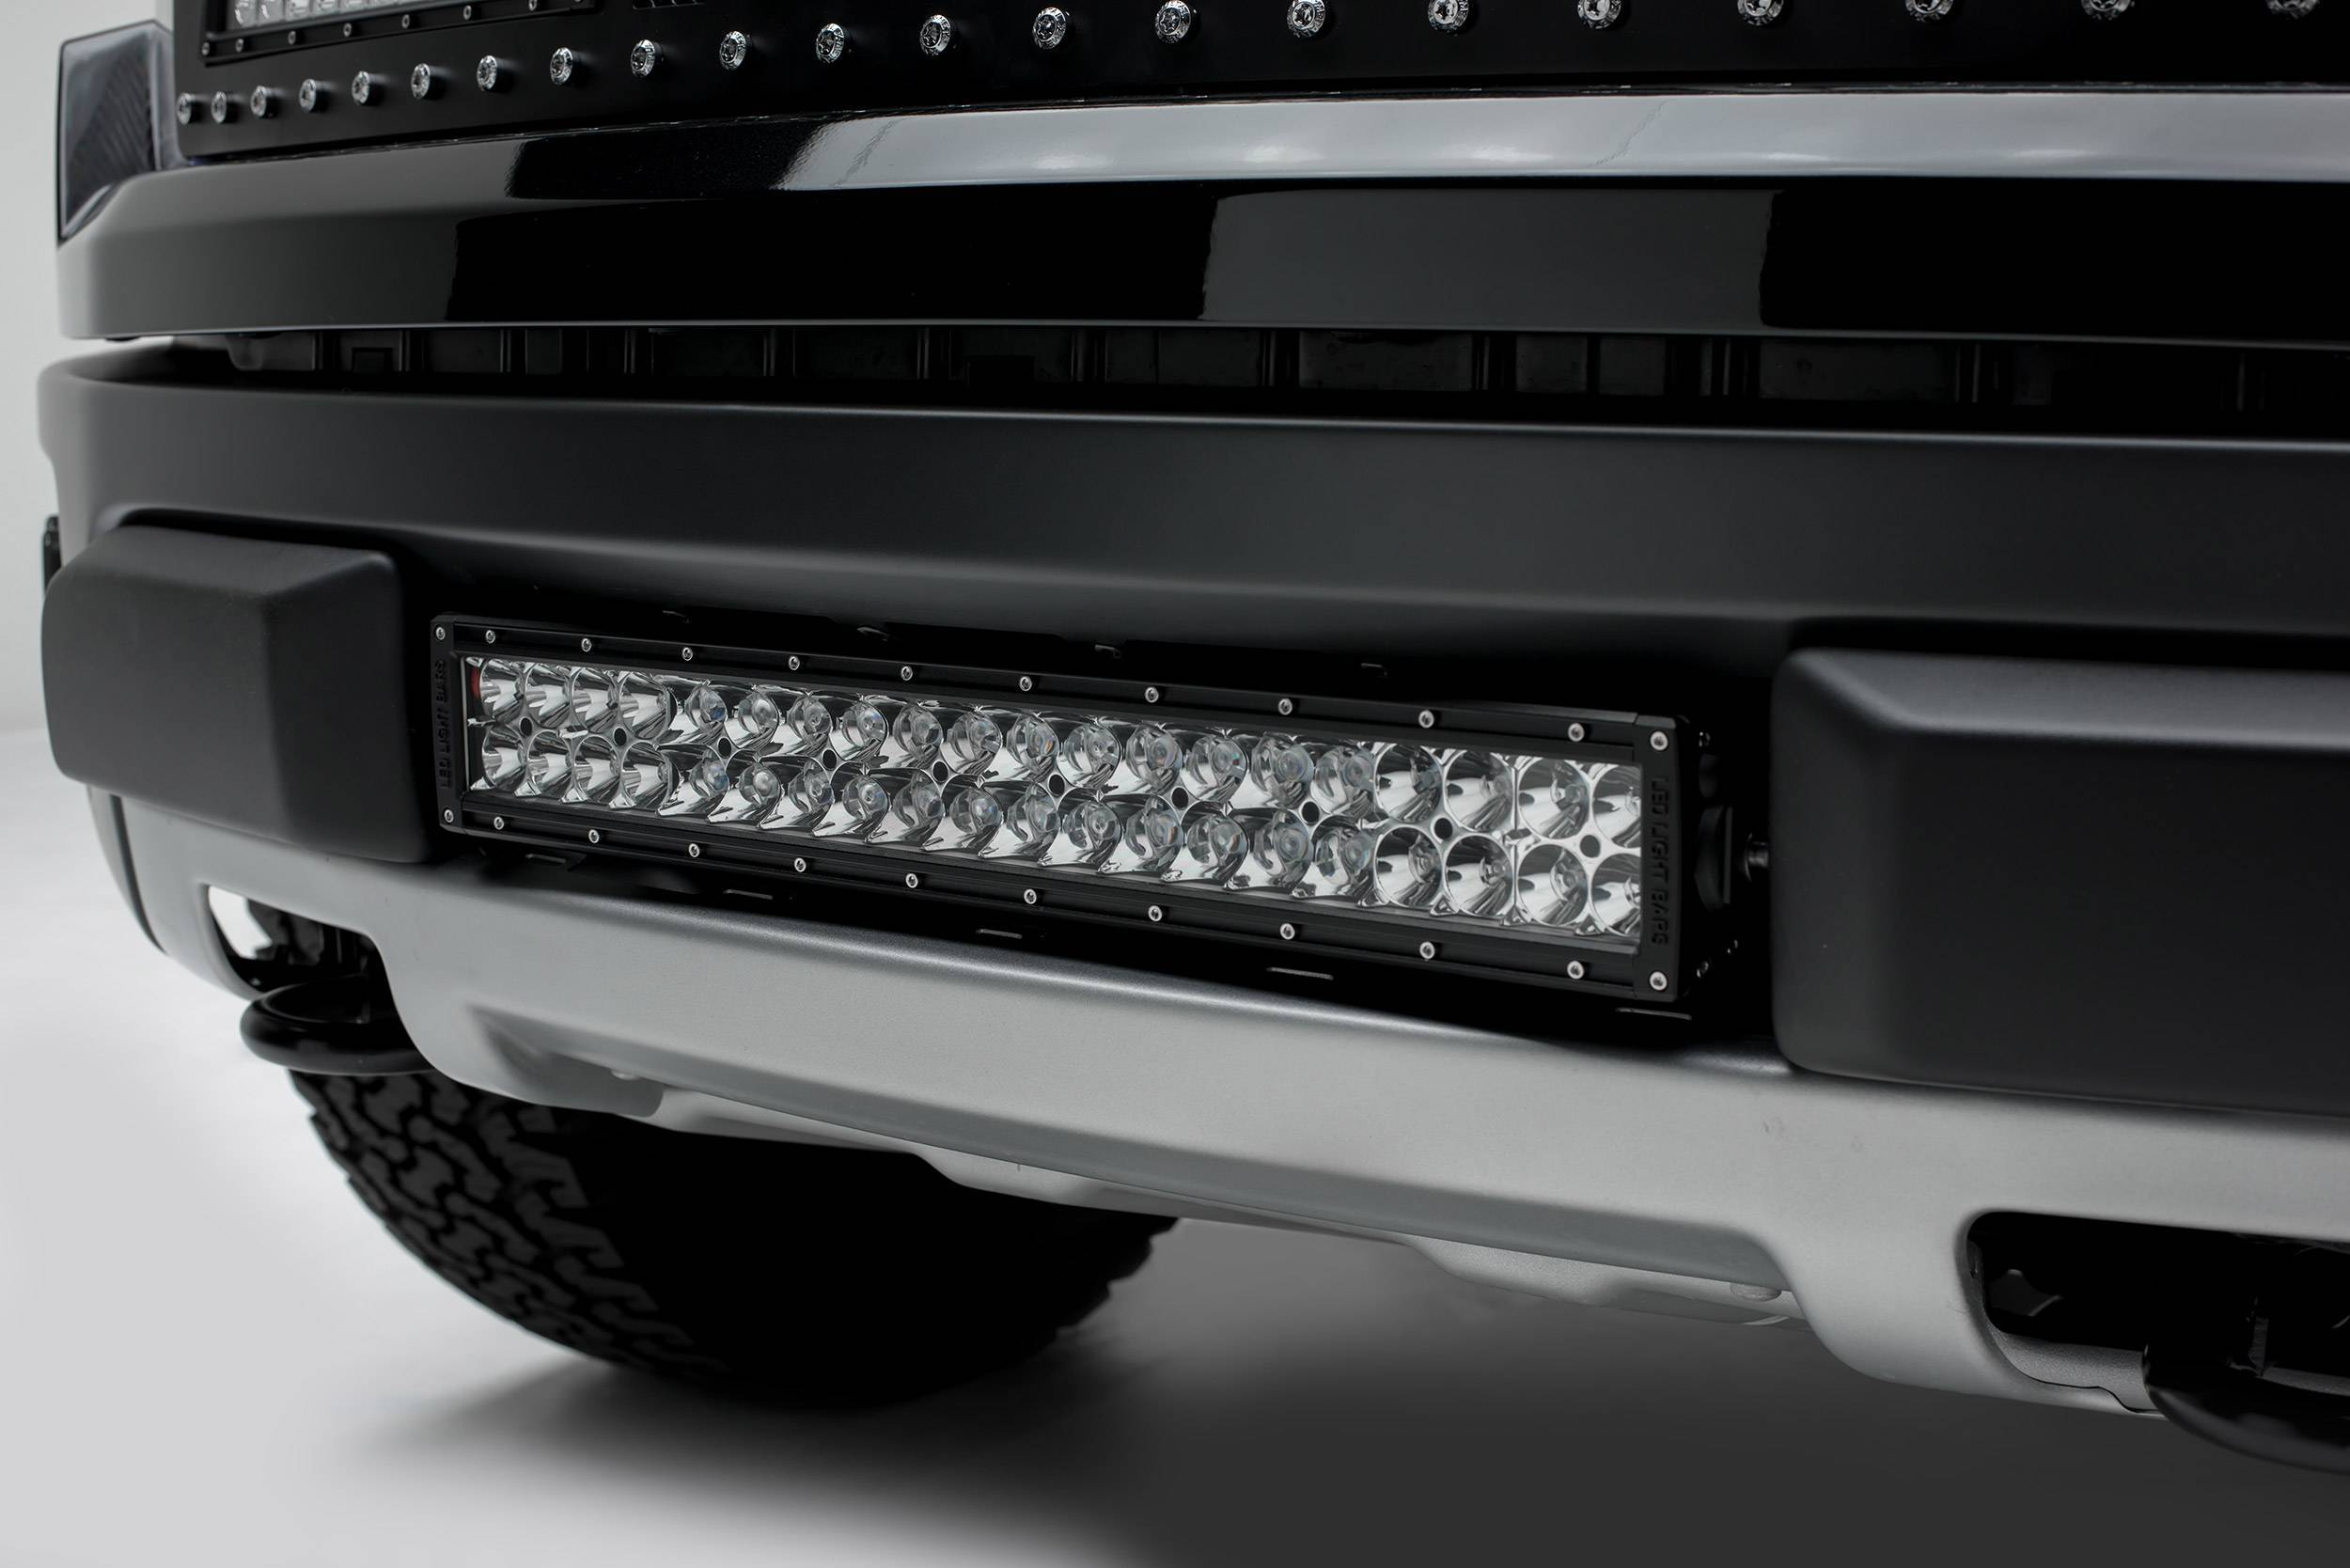 ZROADZ - 2010-2014 Ford F-150 Raptor Front Bumper Center LED Kit with (1) 20 Inch LED Straight Double Row Light Bar - PN #Z325661-KIT